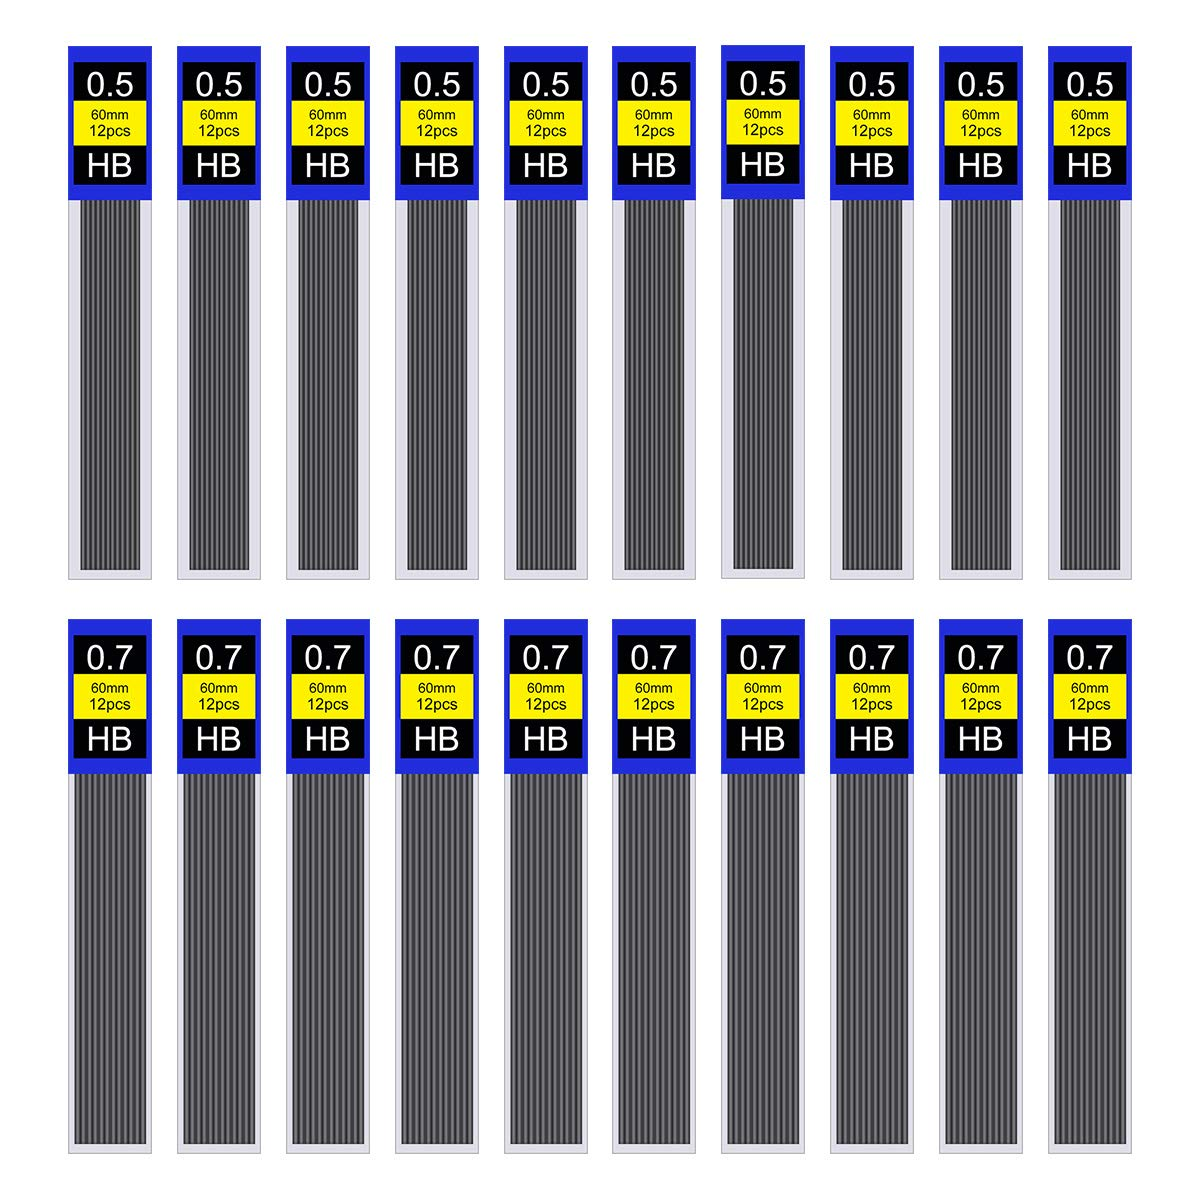 WXJ13 240 Pack 0.5 mm HB Lead Refills Mechanical Automatic Pencil Leads...